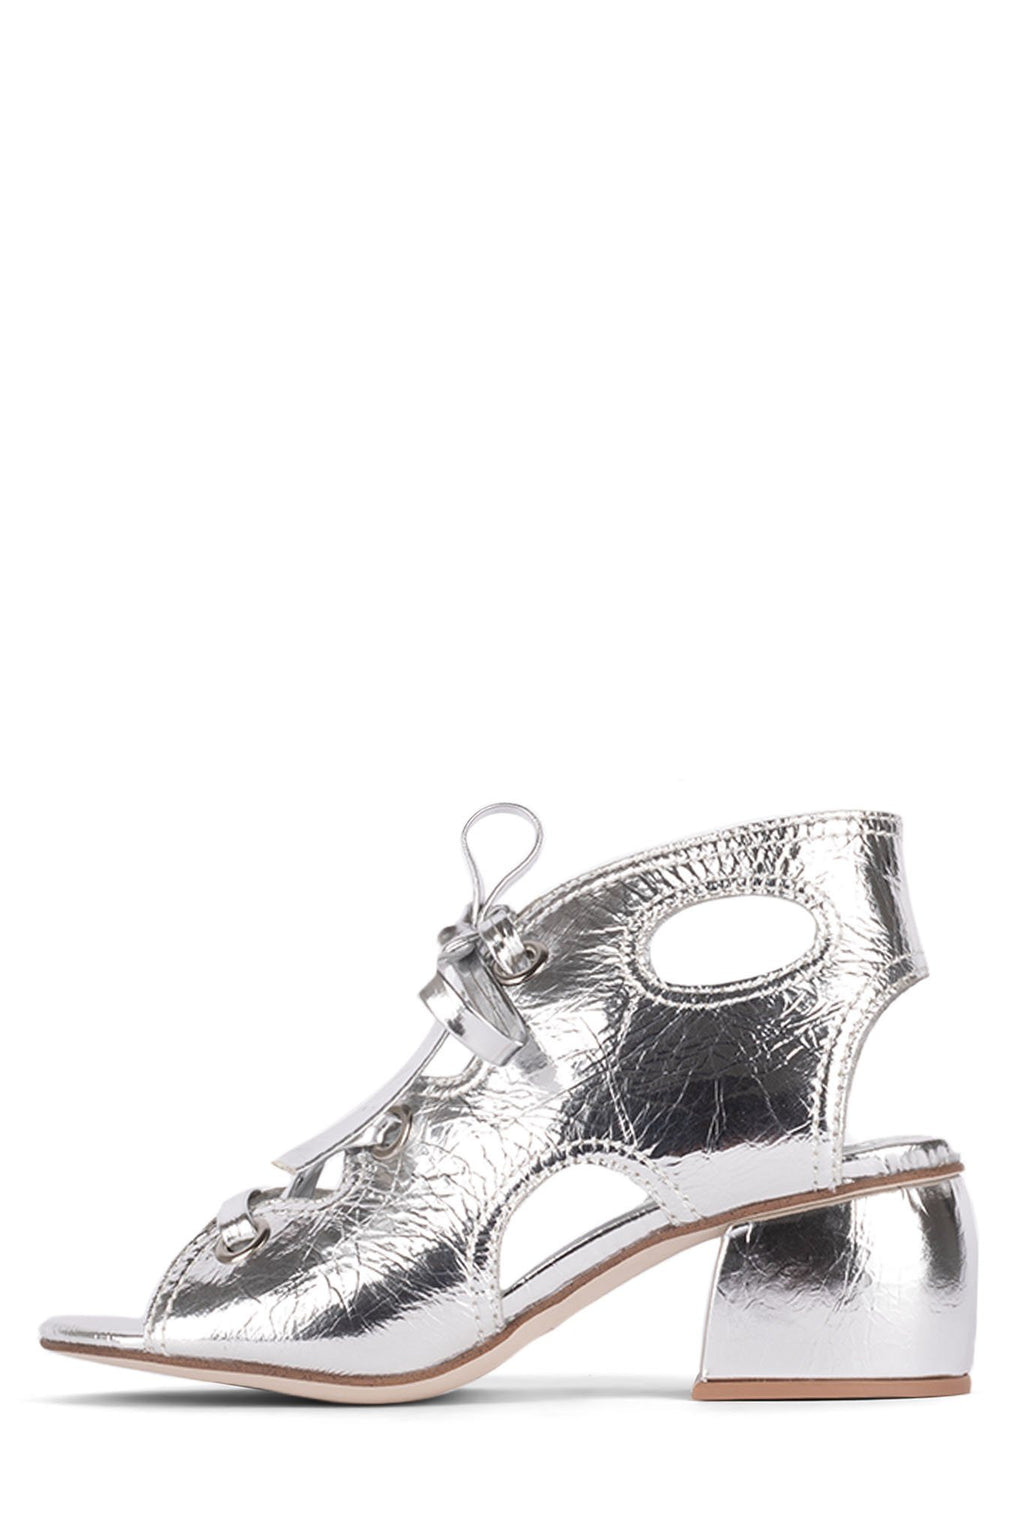 SIXTIES Heeled Sandal YYH Silver Crinkle 6